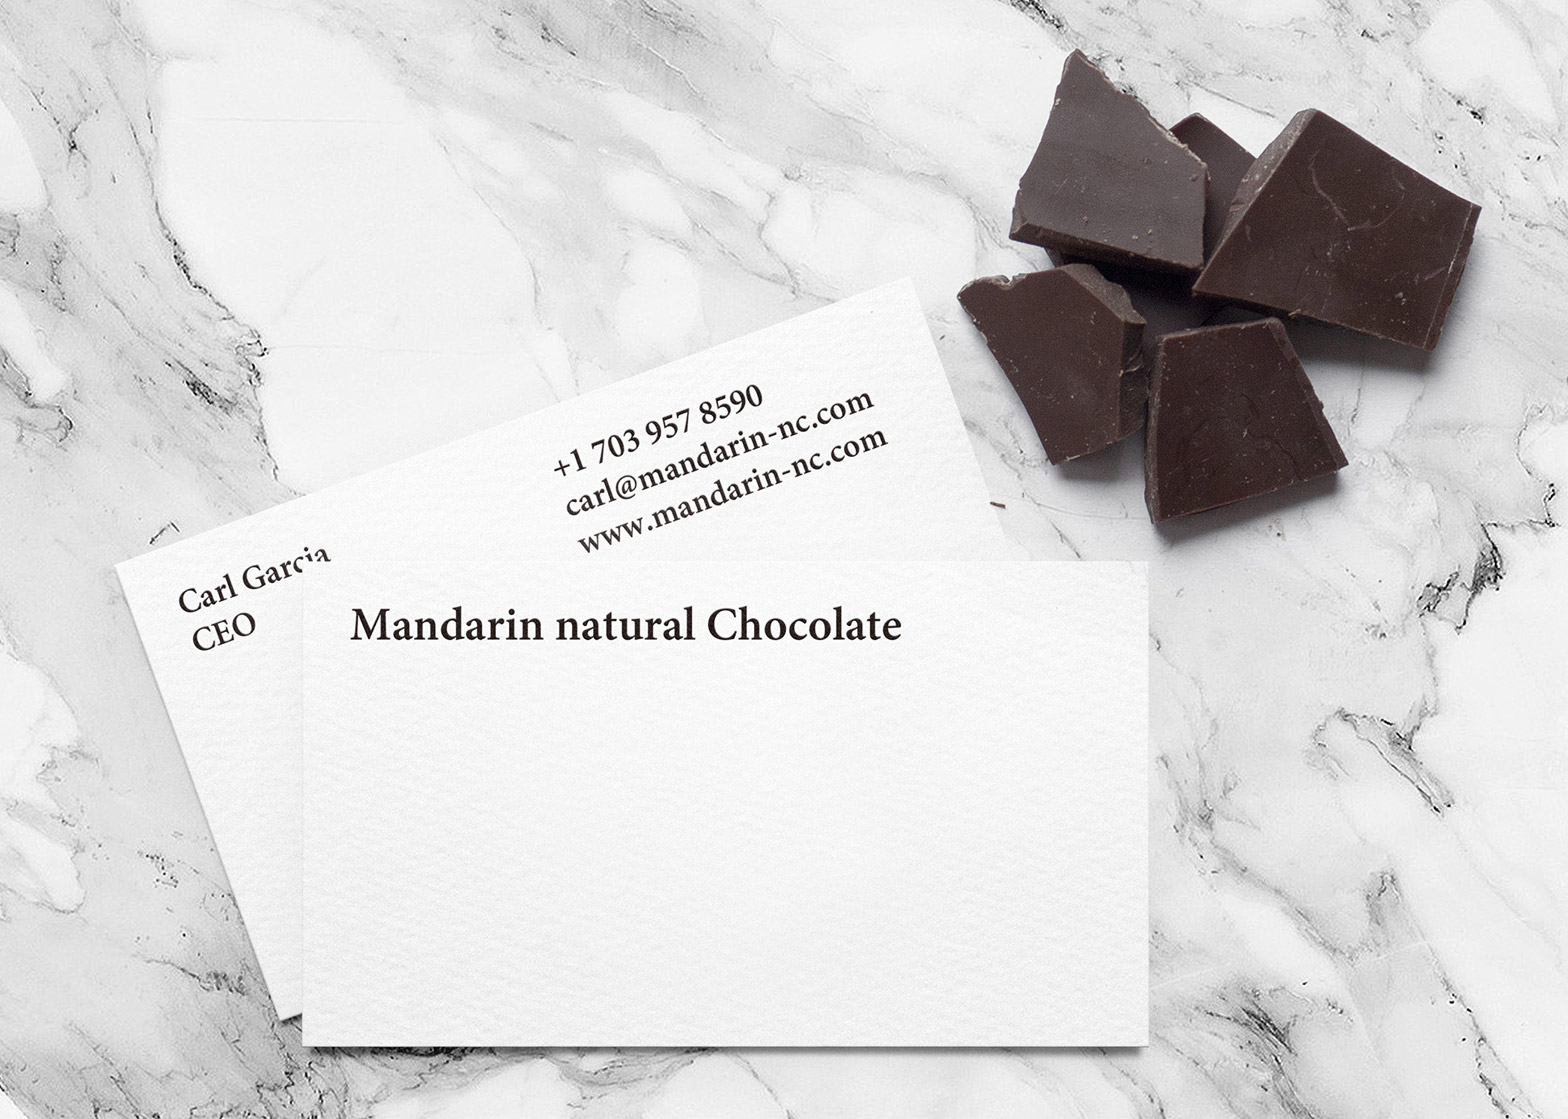 mandarin-natural-chocolate-yuta-takahashi-branding-packaging-design_dezeen_1568_6